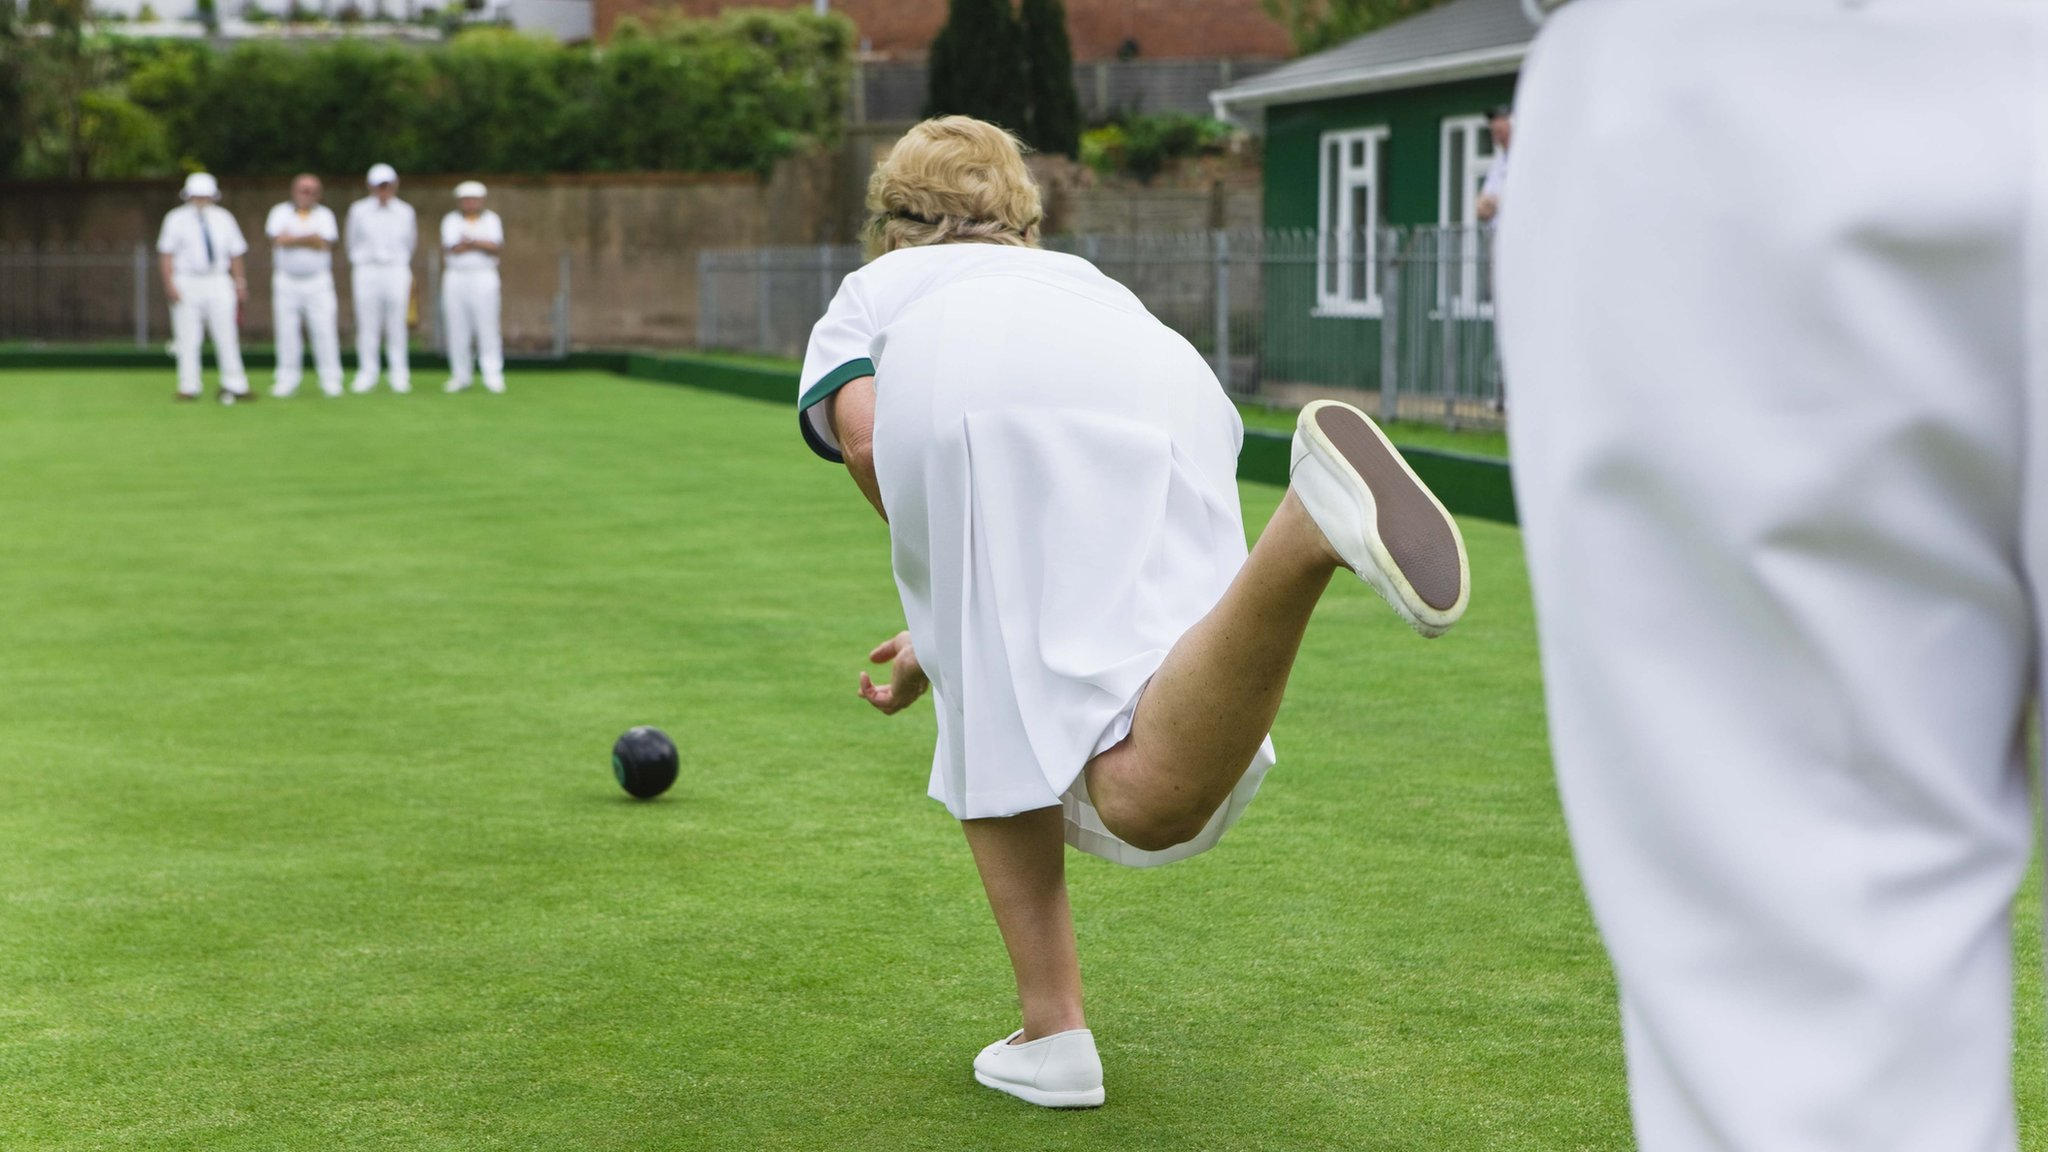 'World's oldest' bowling club refuses to lift ban on women